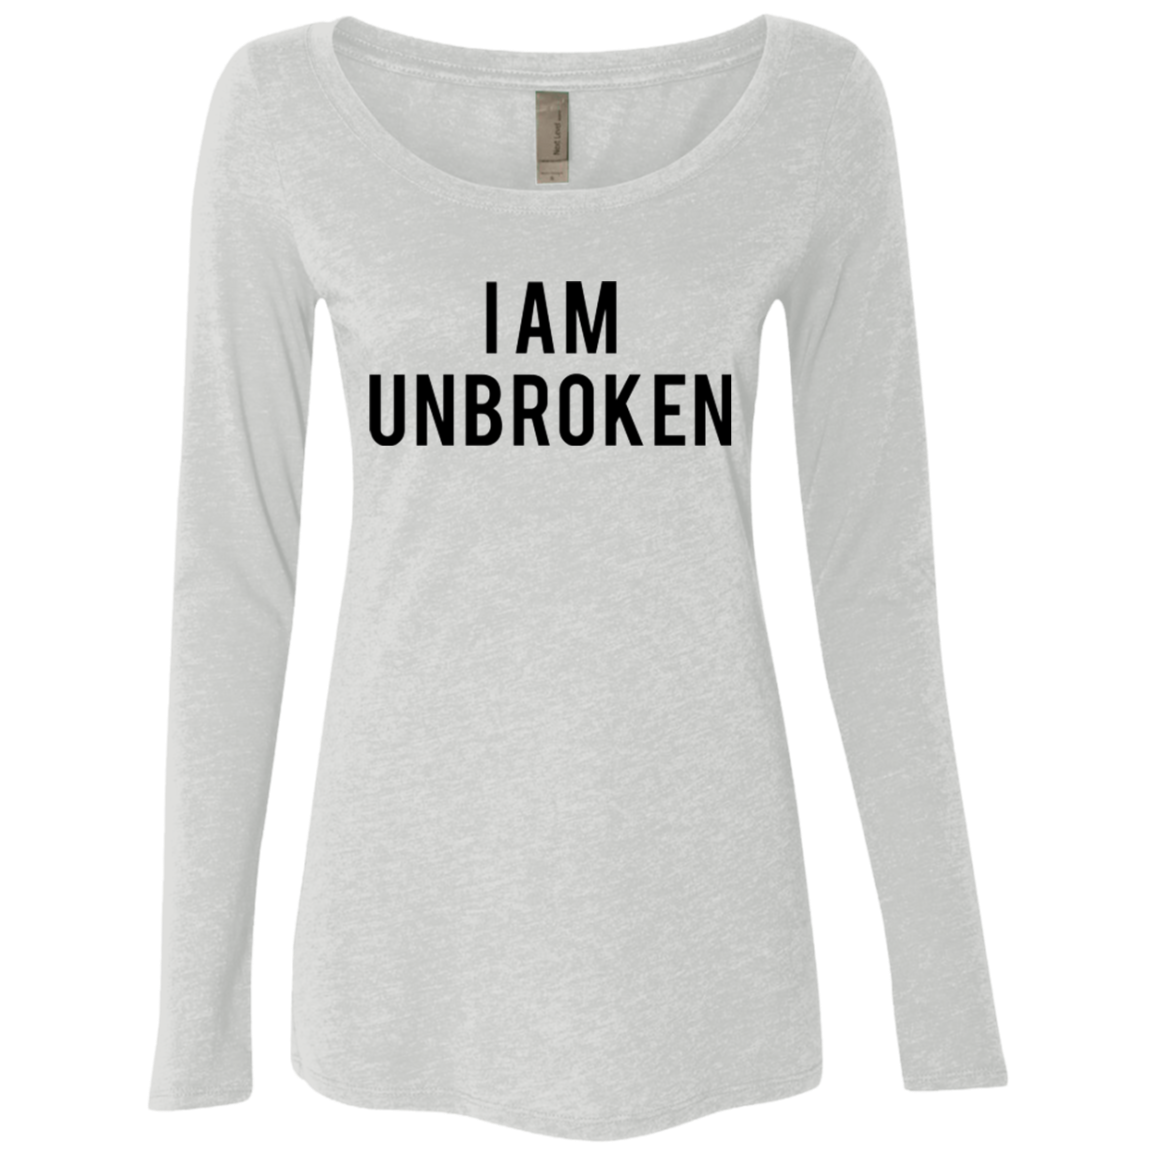 I Am Unbroken Women's Long Sleeve Tee